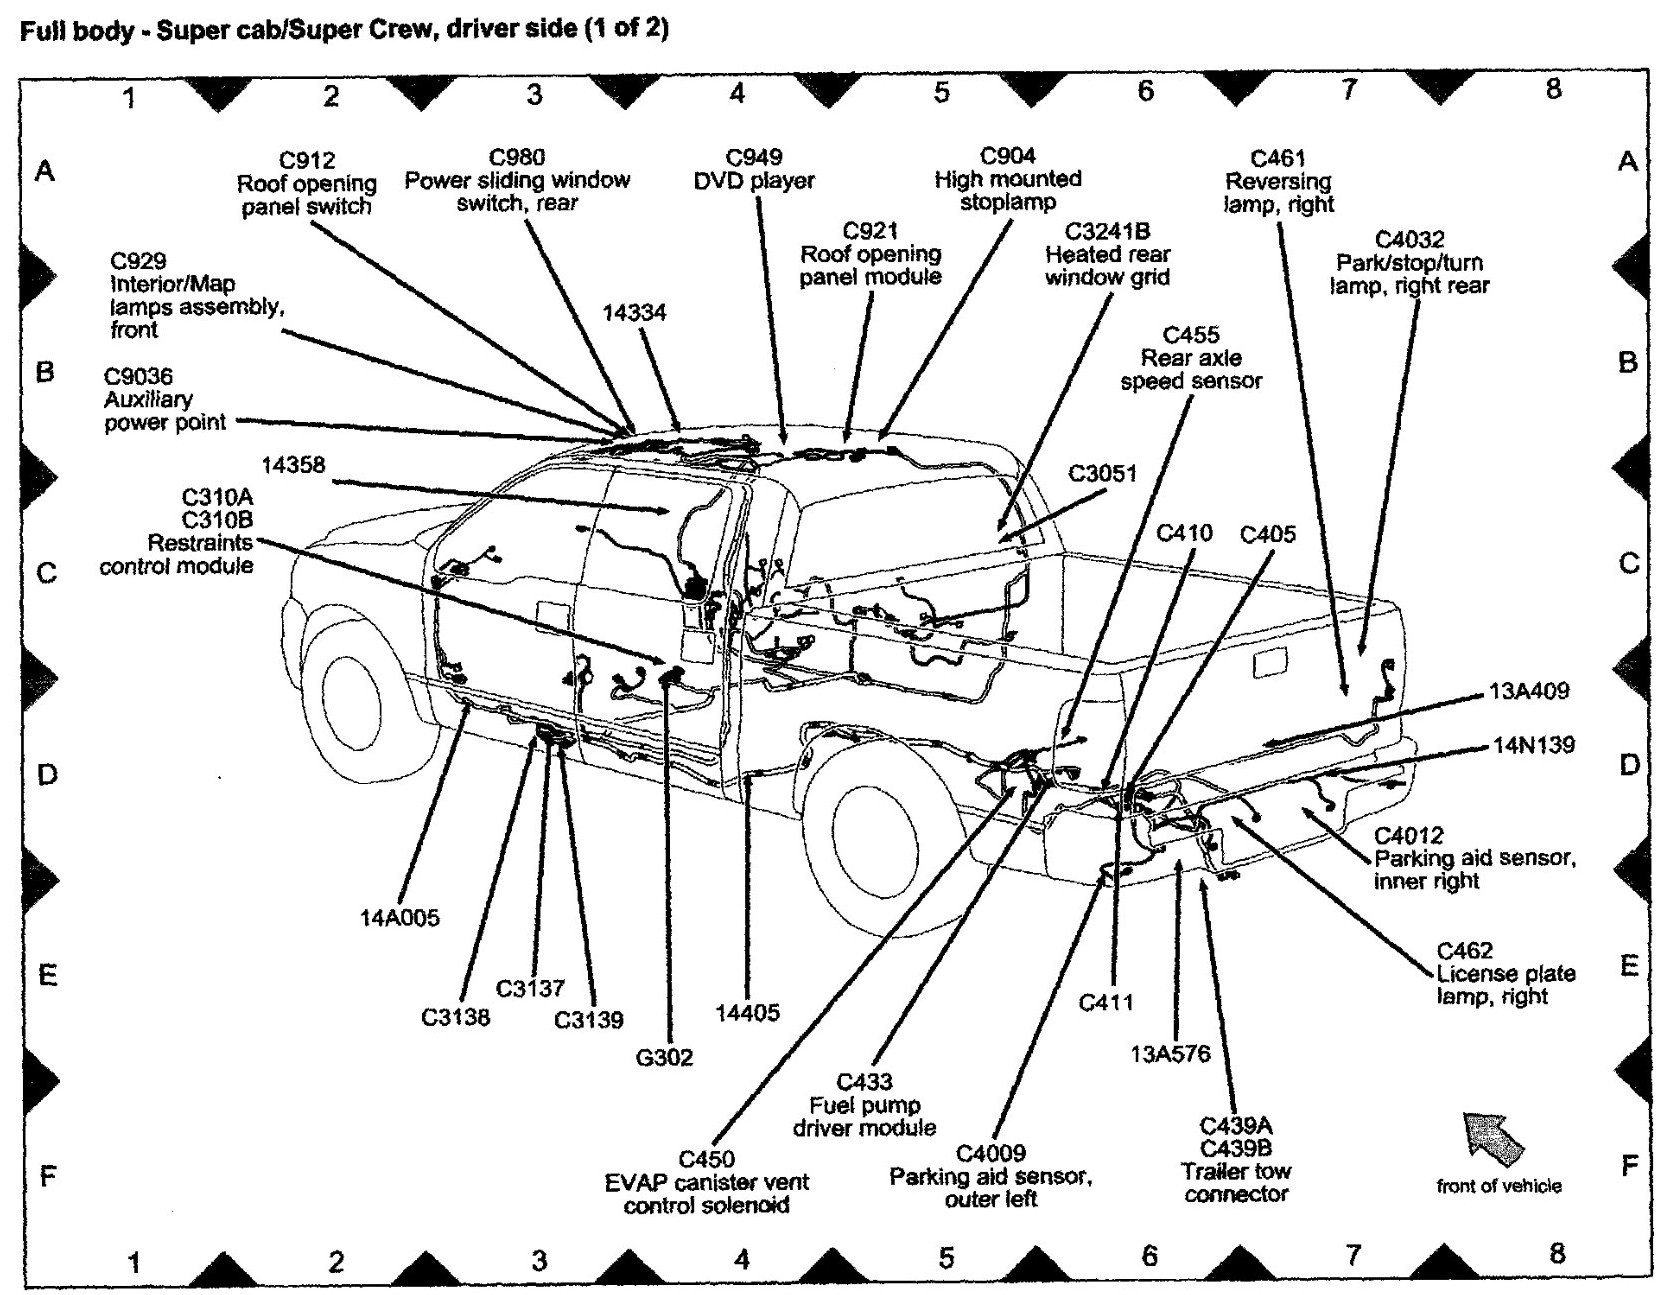 Jeep Anche Fuse Box Diagram As Well 2006 Jeep Liberty Wiring Diagram